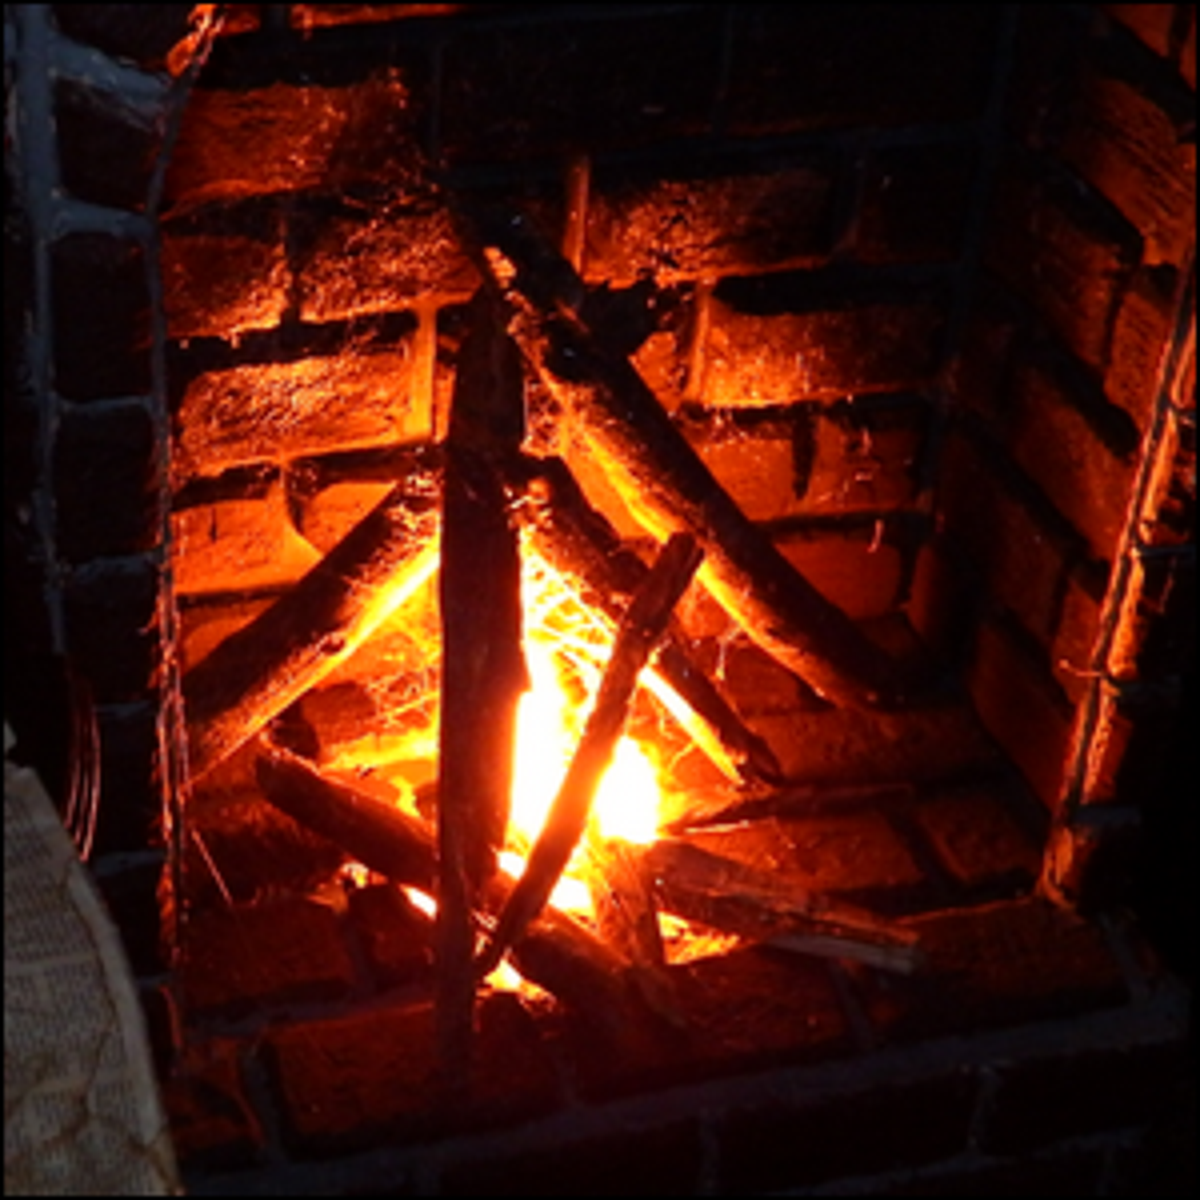 A fireplace at Granby Manor.